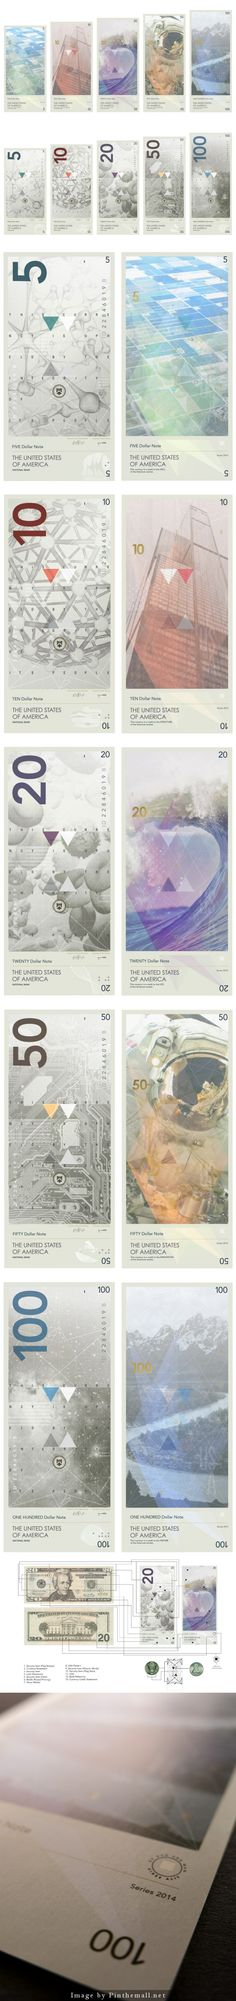 Travis Purrington reimagines US currency